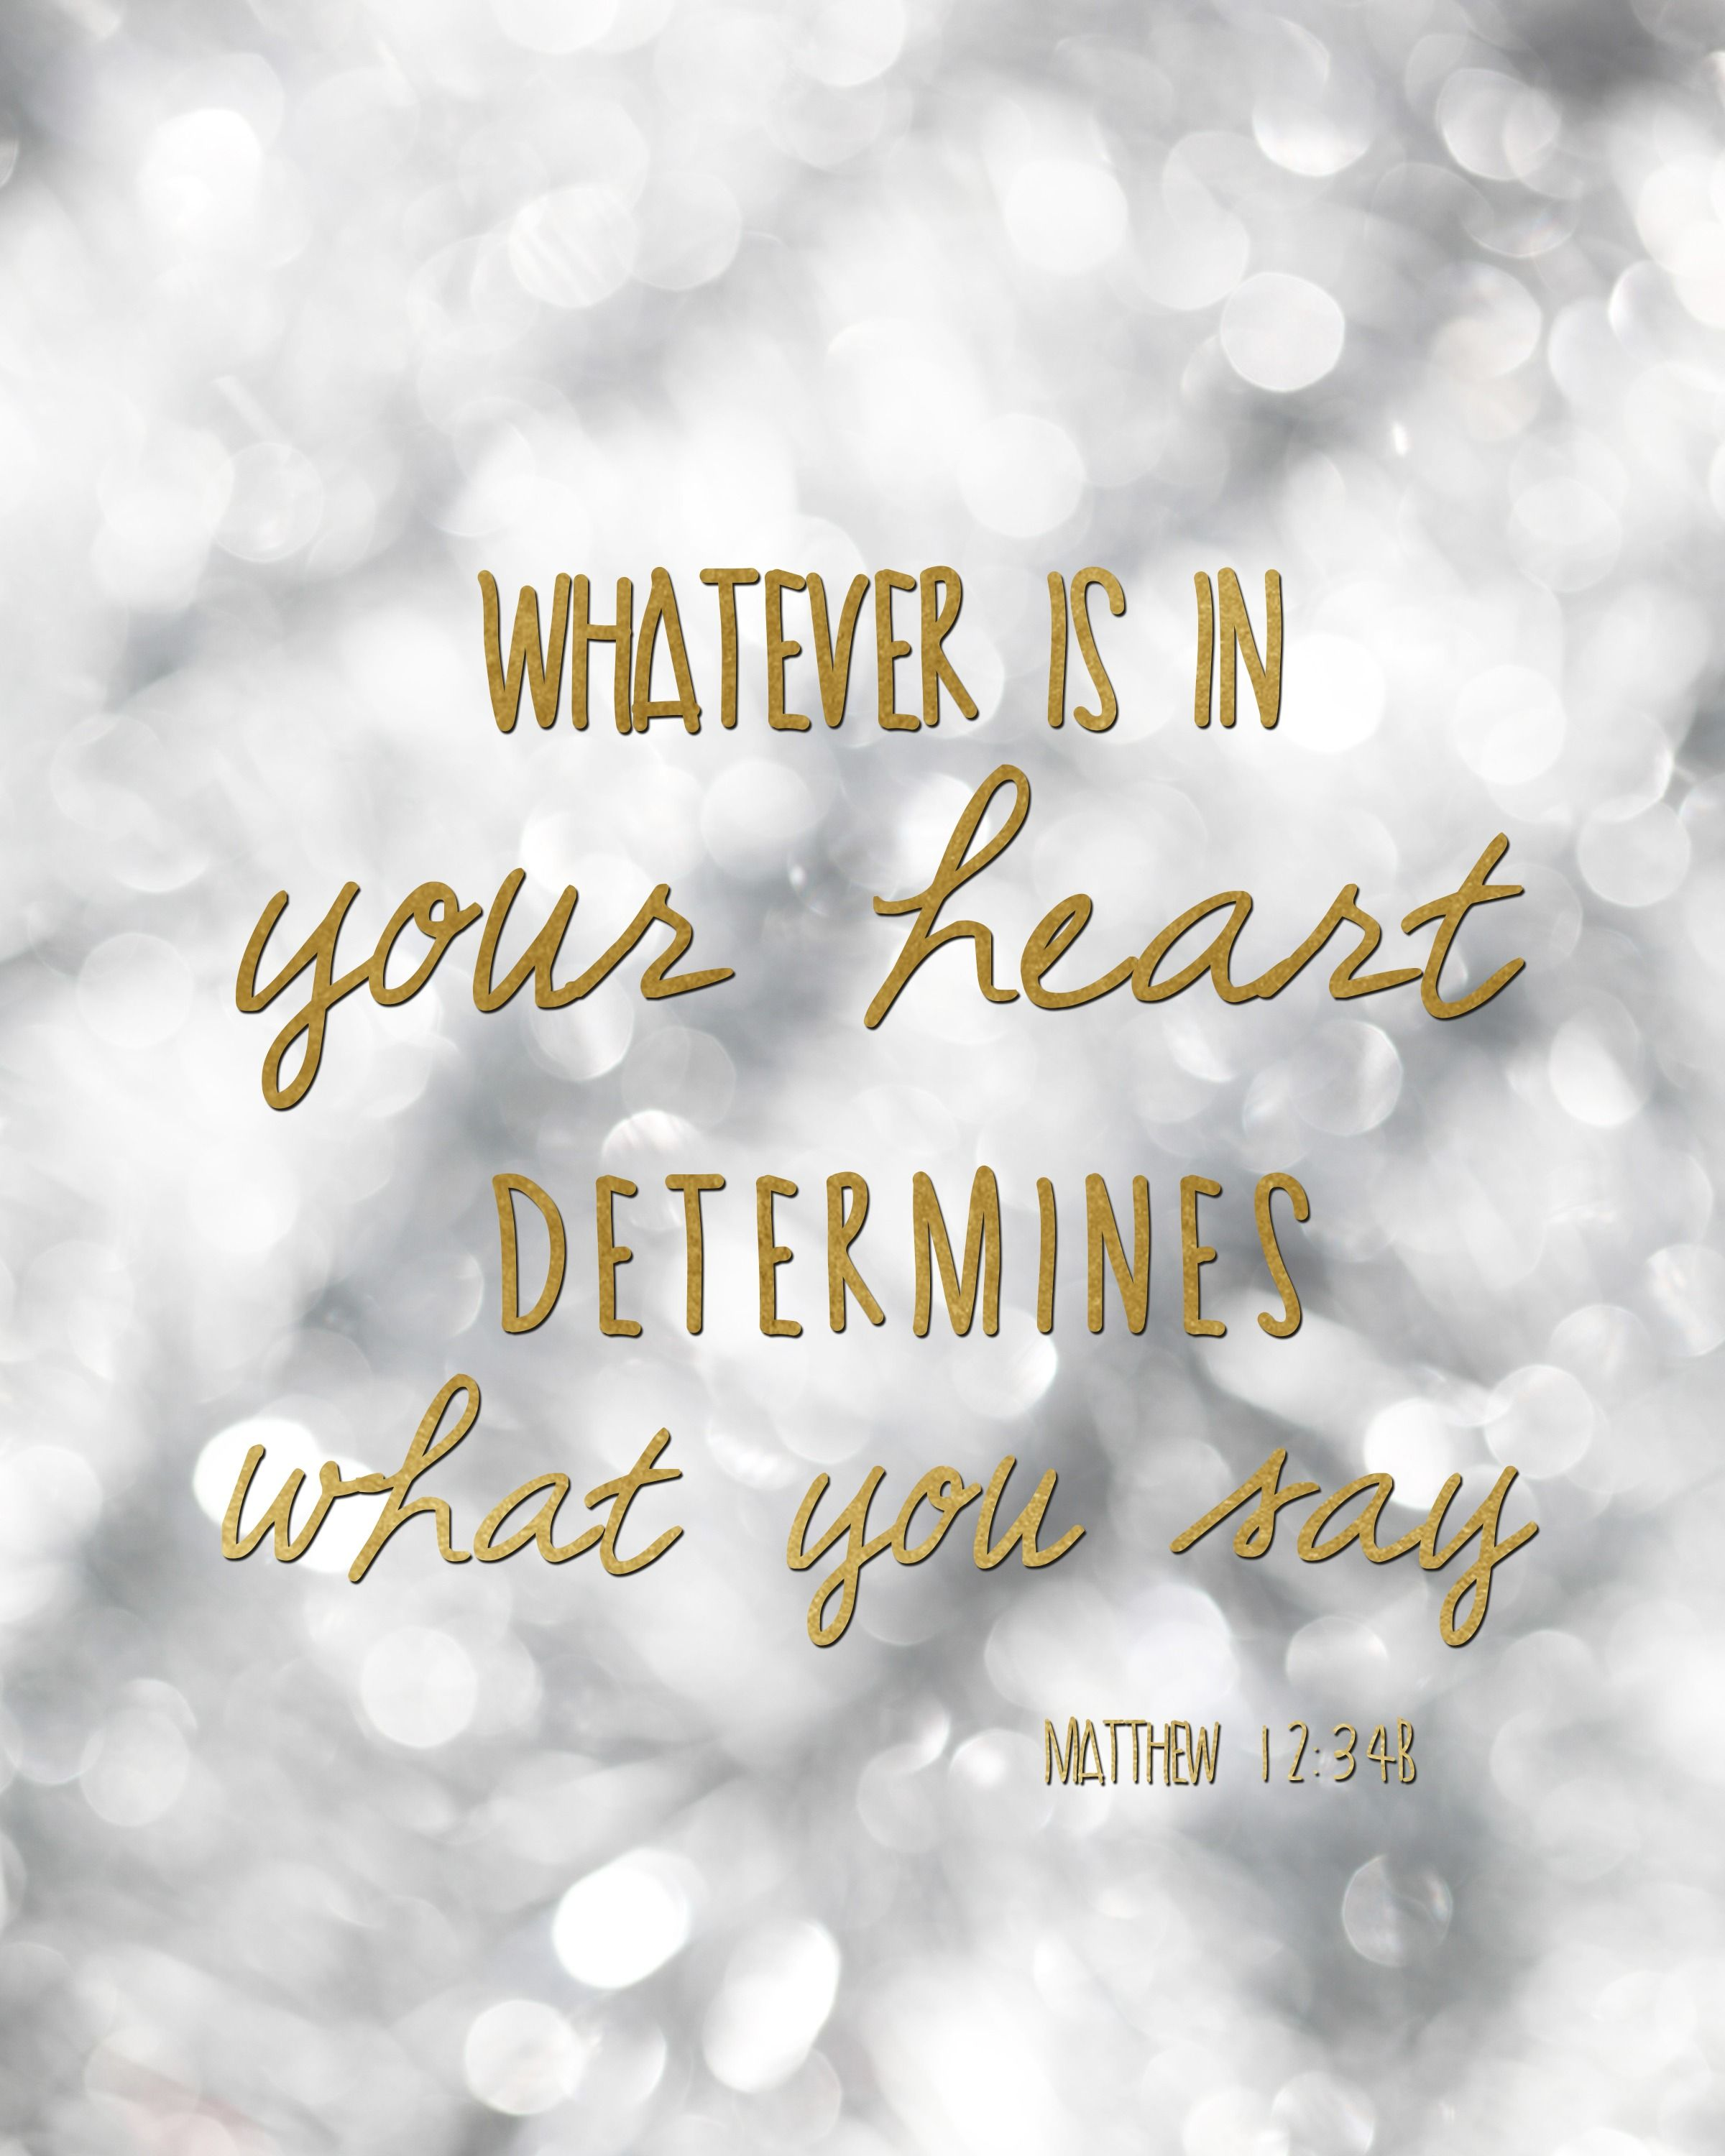 Words to live by facebook status desktop backgrounds and free whatever is in your heart determines what you say matthew 1234 free kristyandbryce Gallery